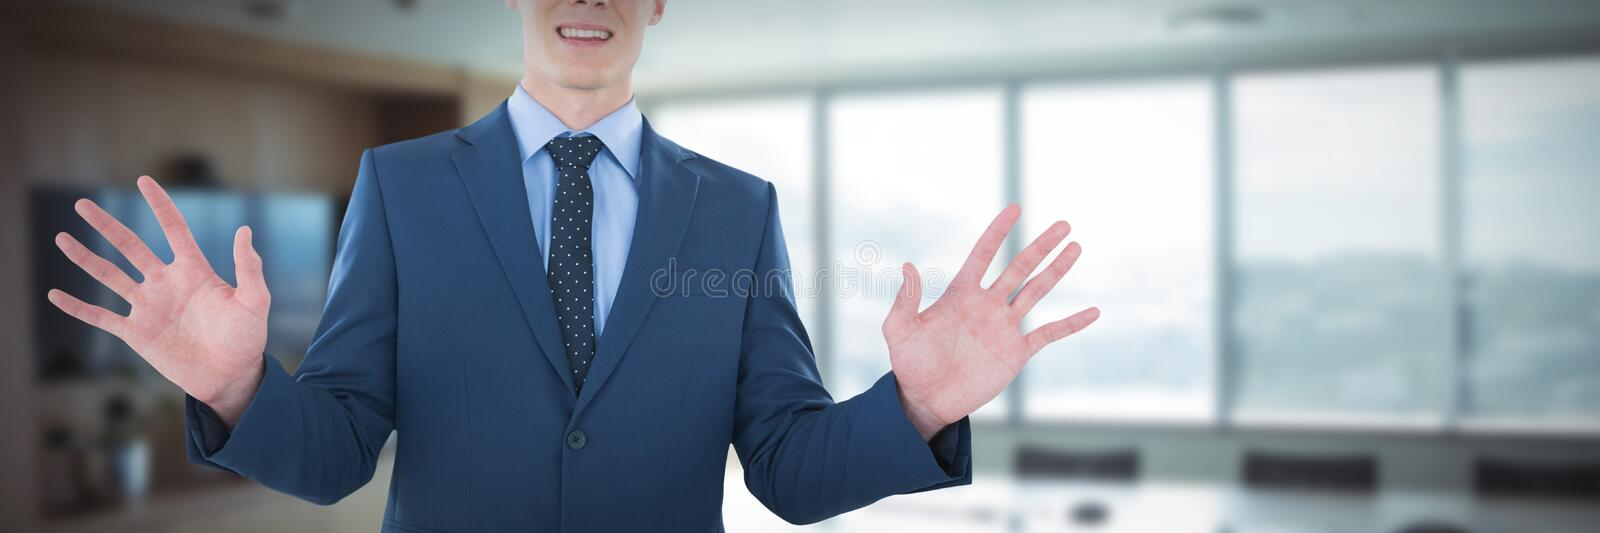 Mid section of smiling businessman using imaginary screen against empty boardroom in office royalty free stock photo